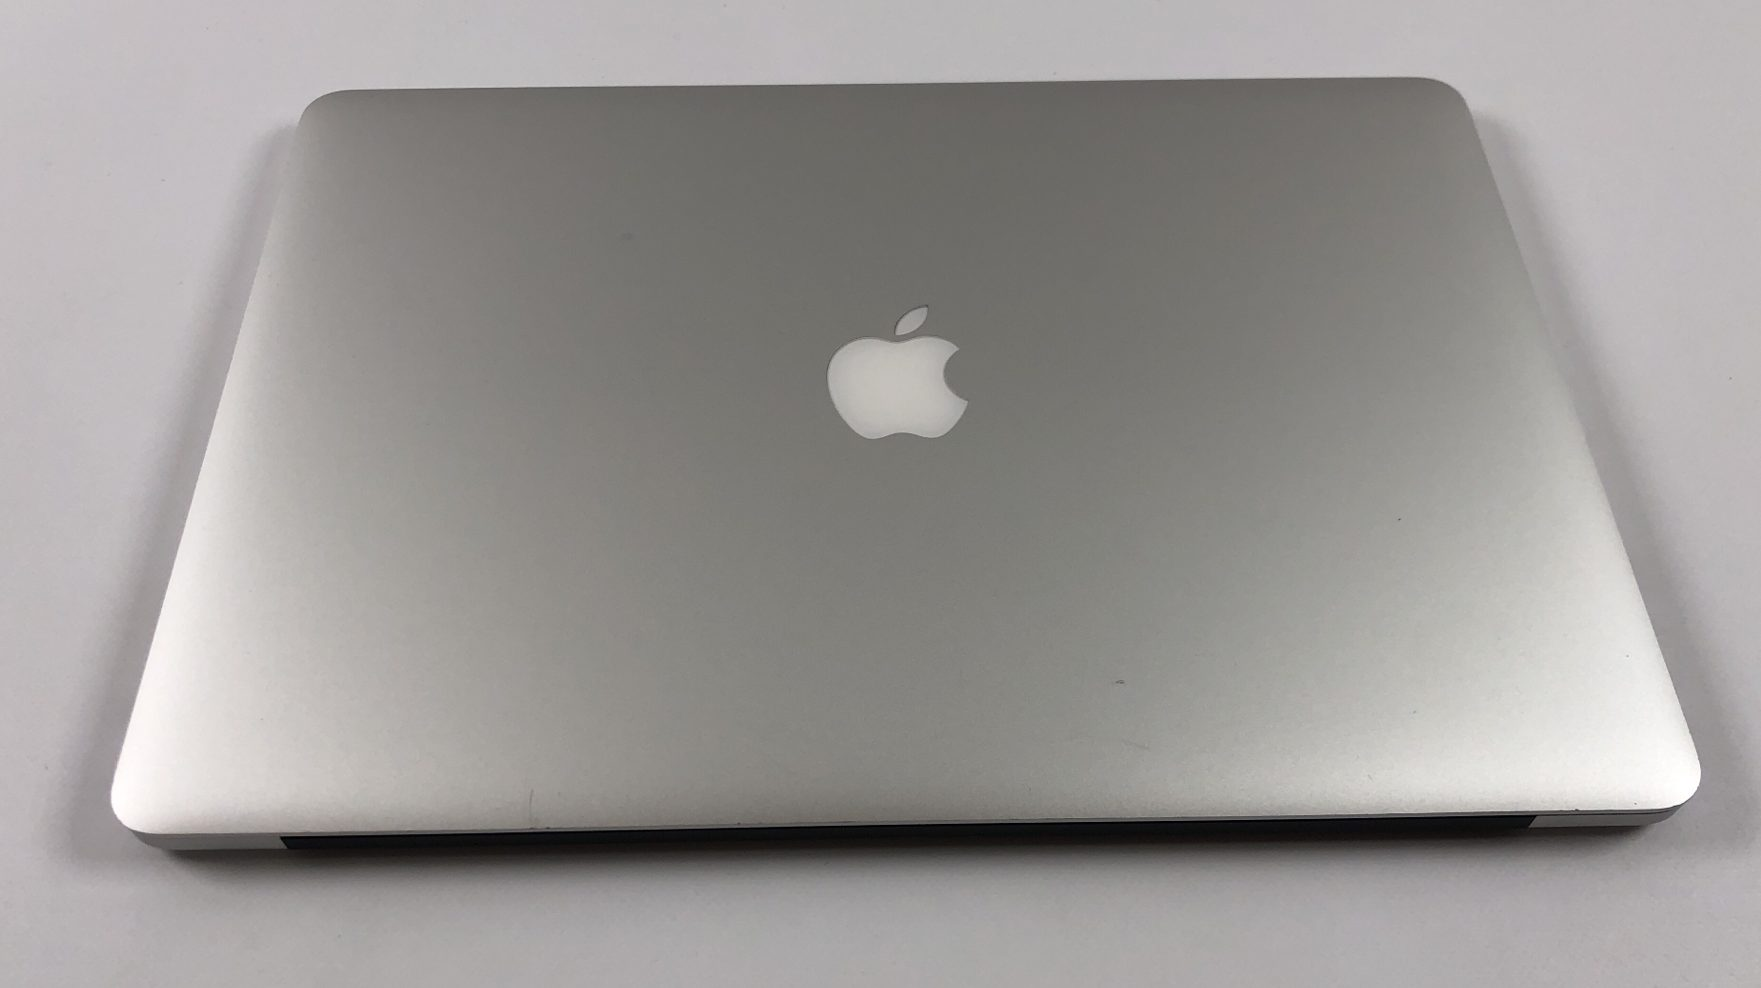 "MacBook Pro Retina 15"" Mid 2015 (Intel Quad-Core i7 2.8 GHz 16 GB RAM 512 GB SSD), Intel Quad-Core i7 2.8 GHz, 16 GB RAM, 512 GB SSD, image 2"